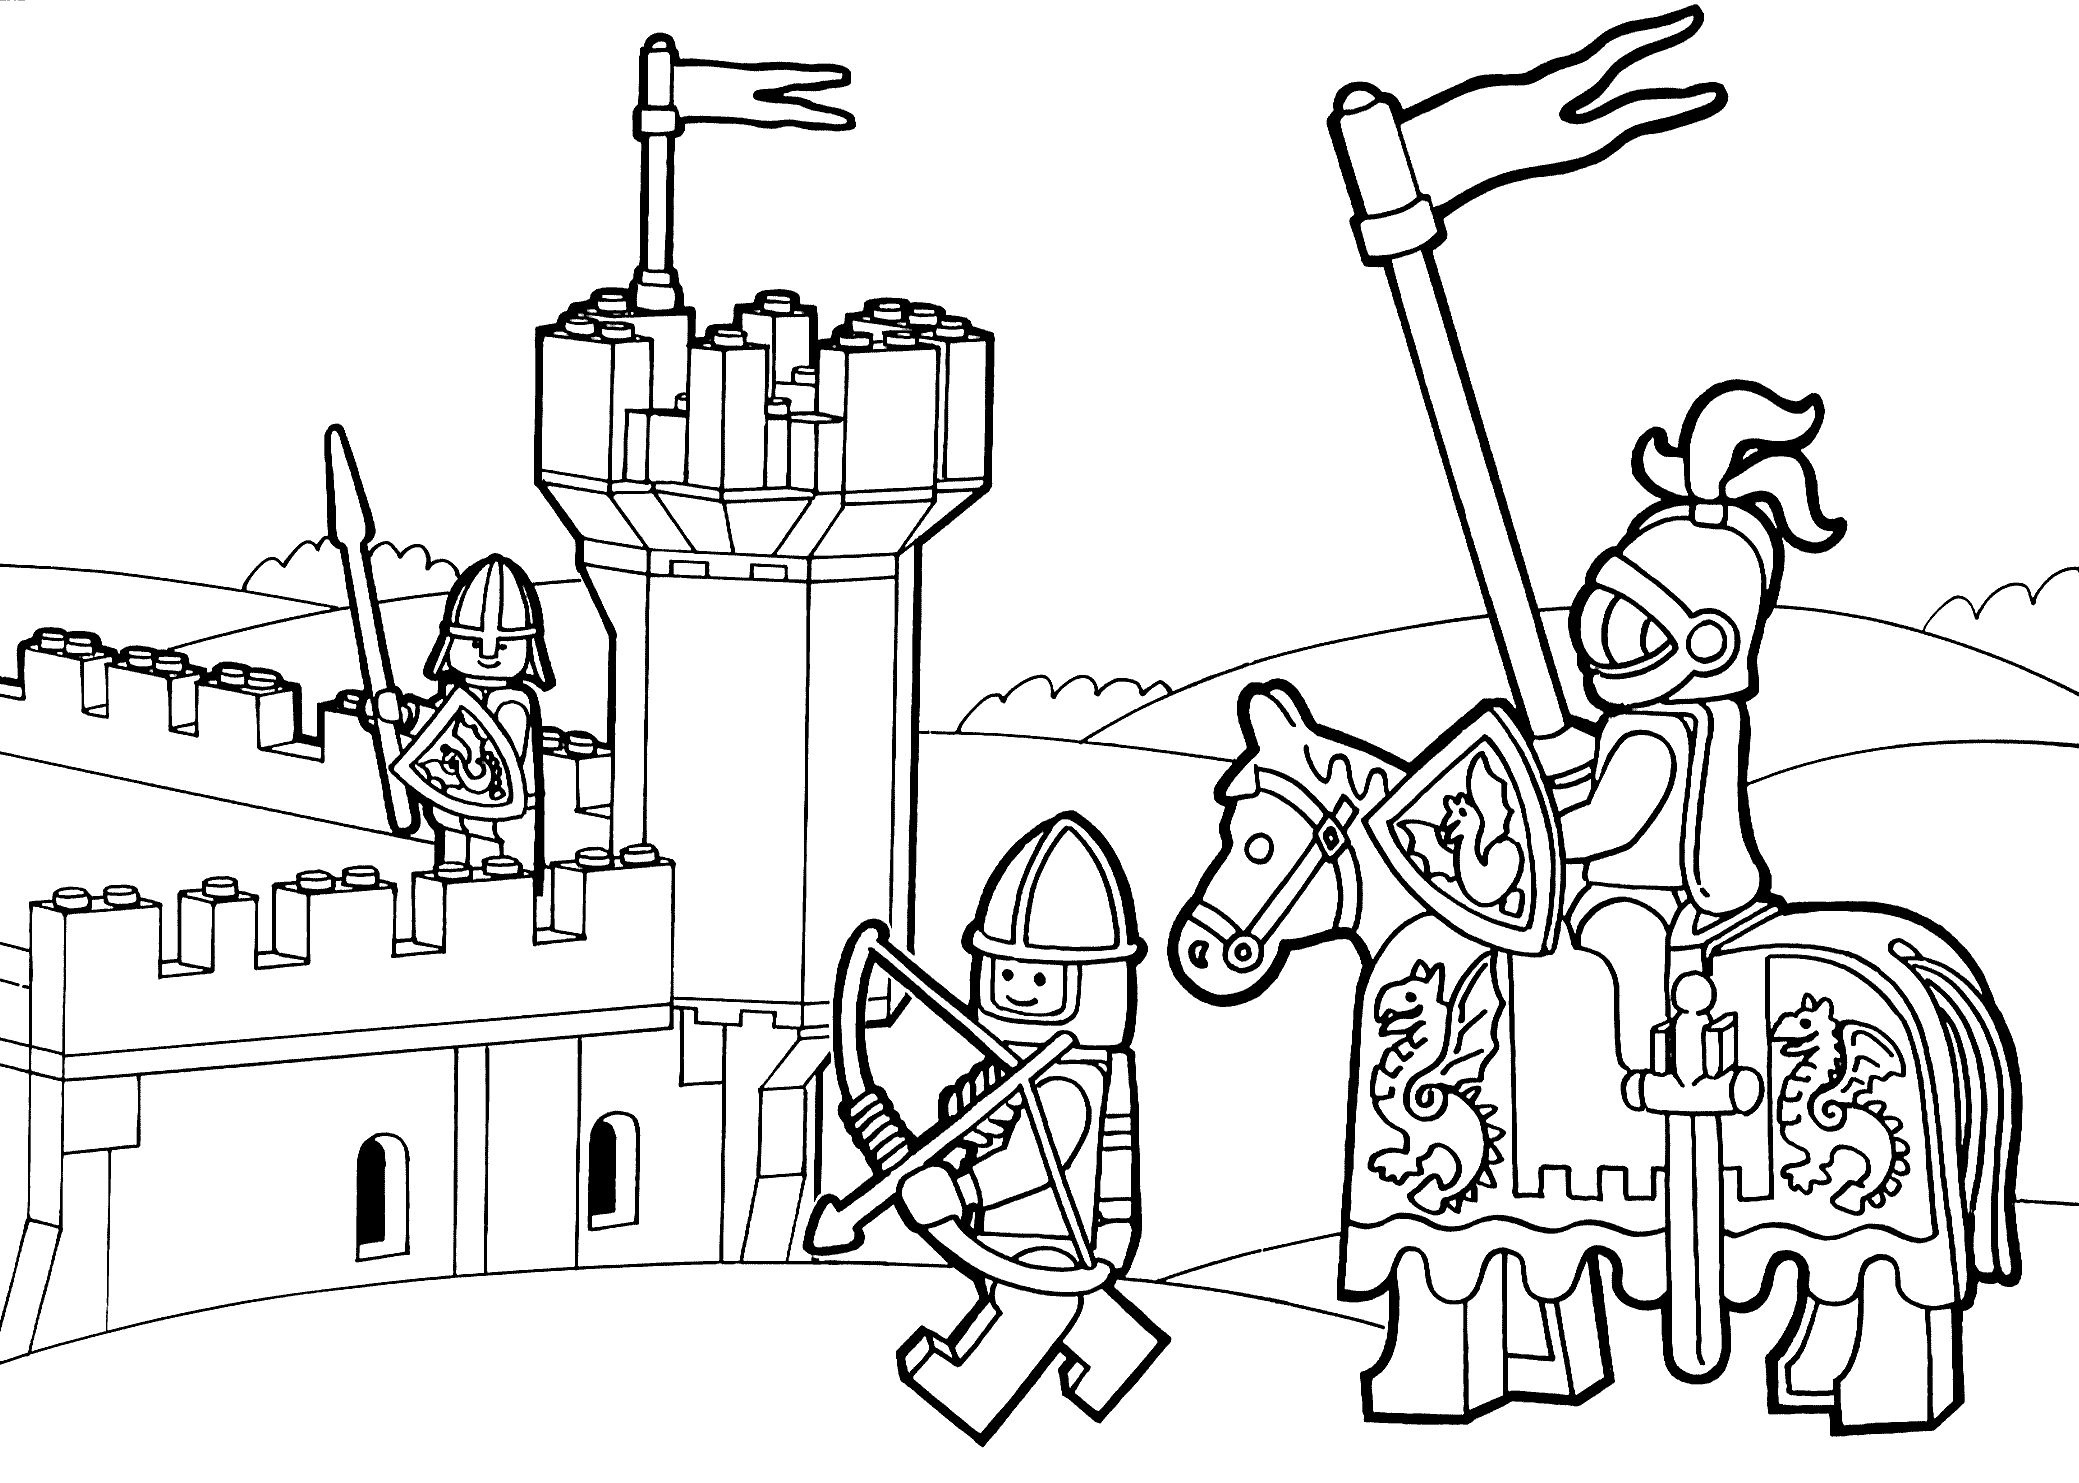 coloring pictures lego lego coloring pages best coloring pages for kids coloring pictures lego